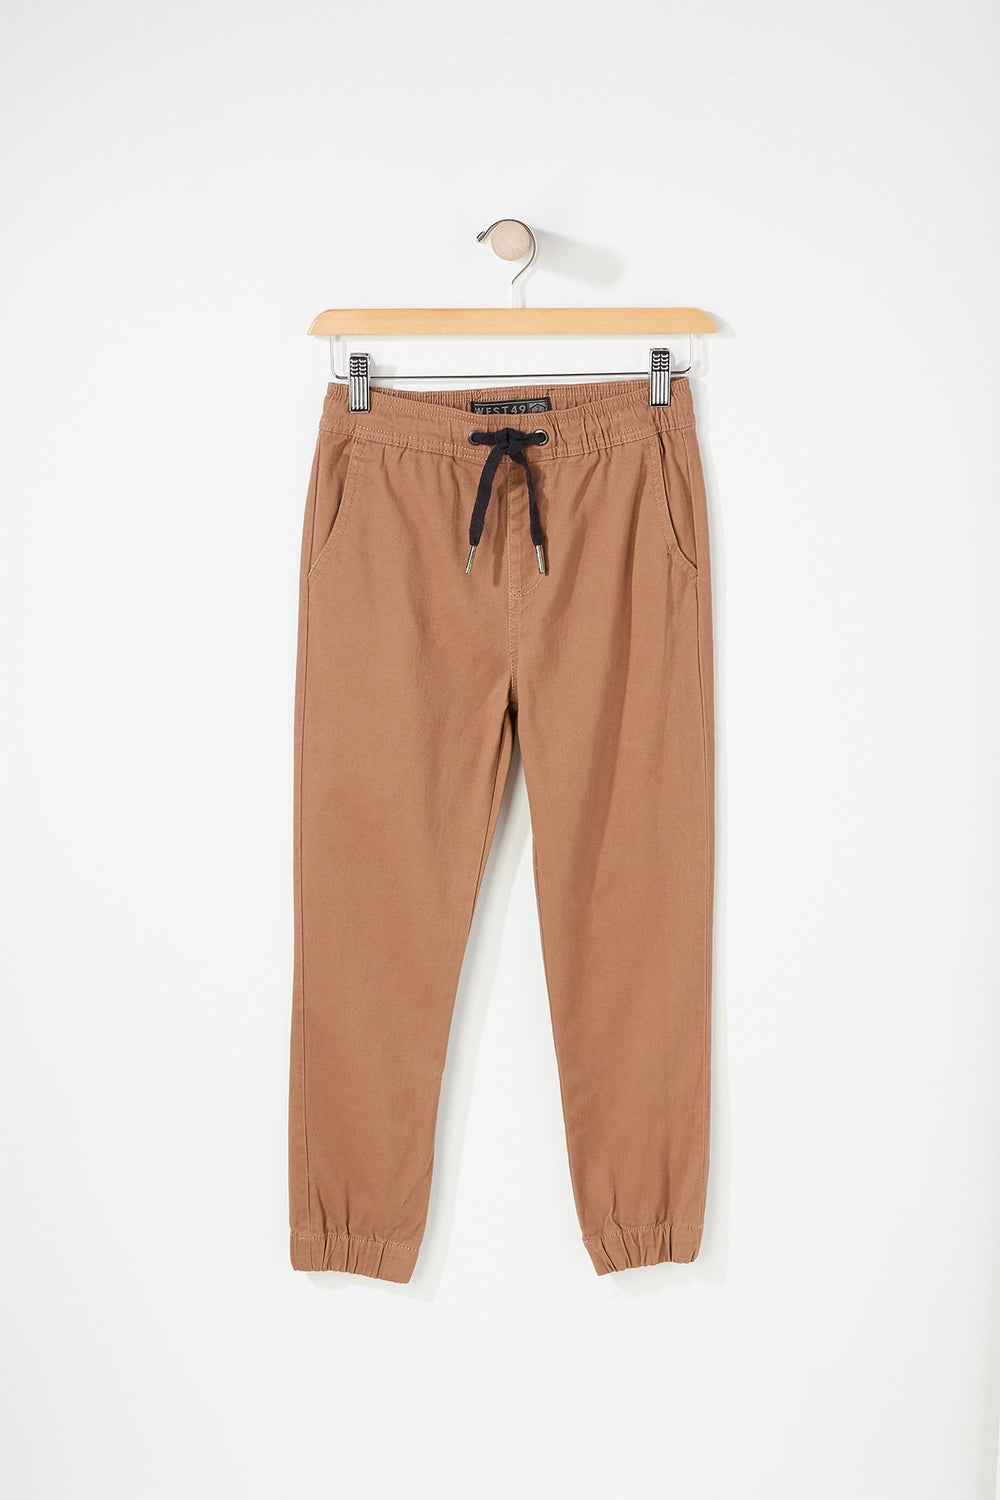 West49 Boys Basic Jogger Camel